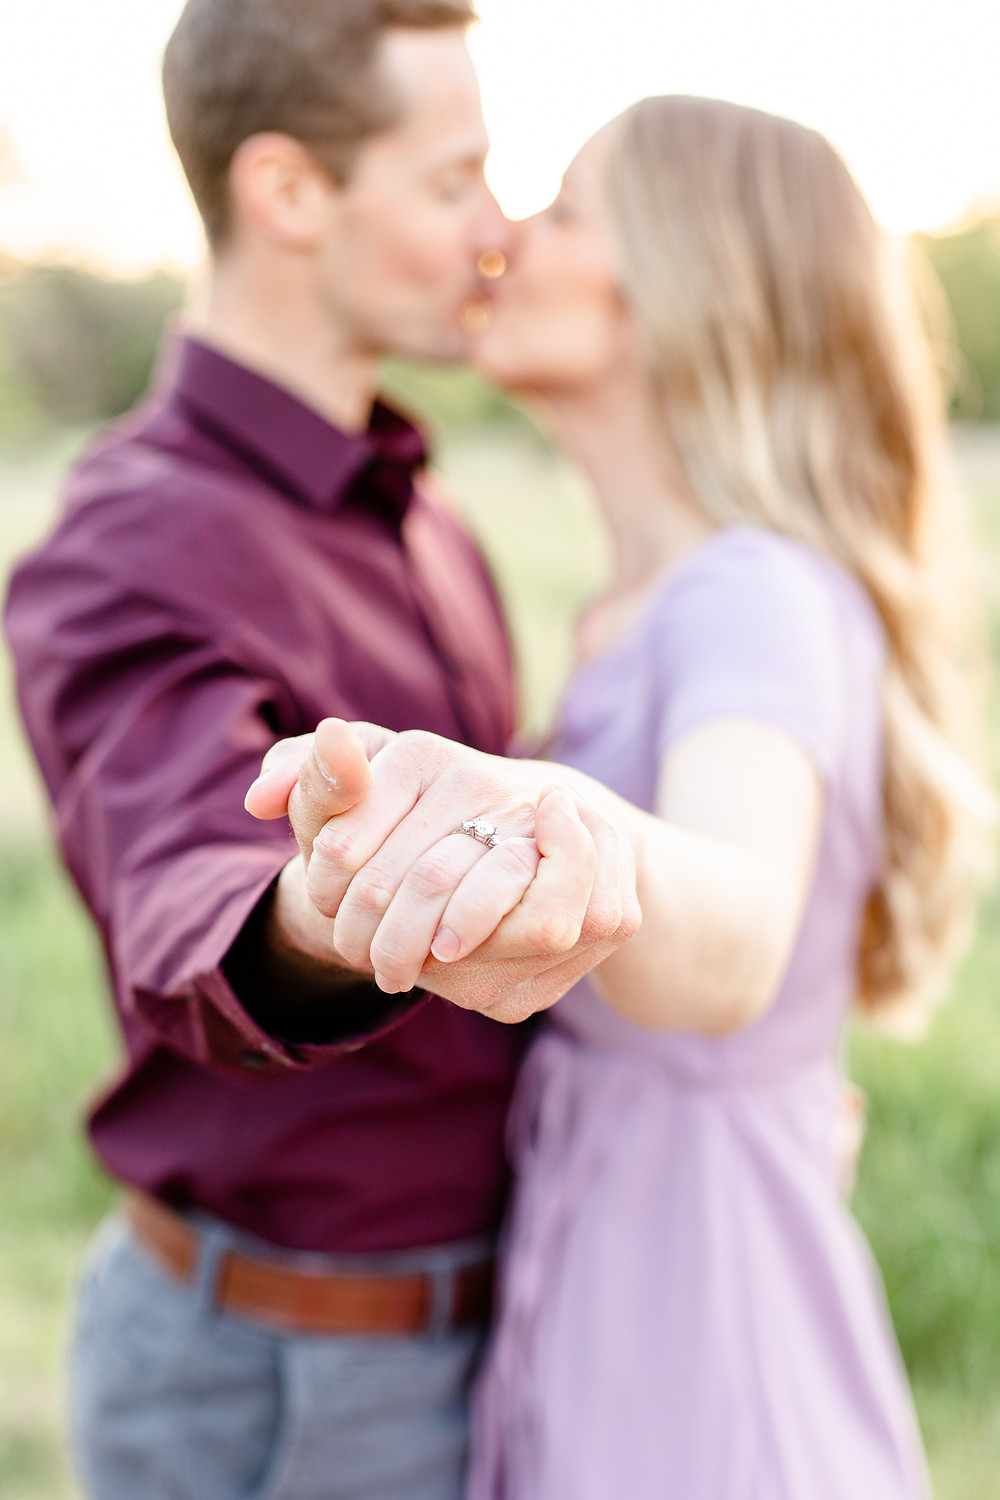 Josh and Andrea wedding photography husband and wife photographer team michigan Al Sabo Land Preserve engagement pictures session photo shoot fiance woods field kissing ring shot